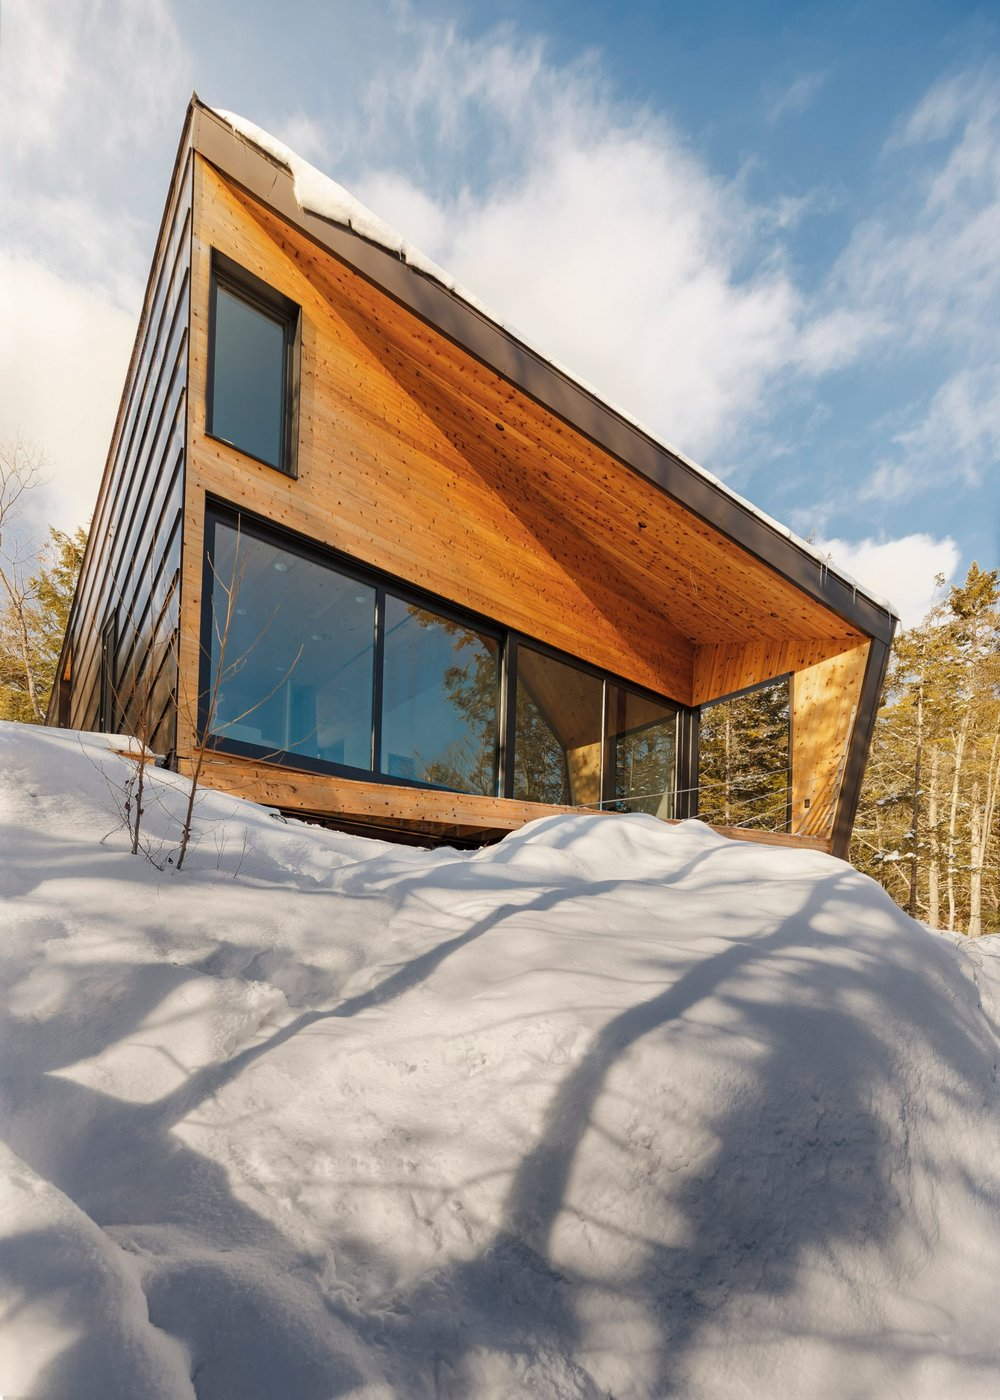 cabin-on-a-rock-i-kanda-architects-architecture-new-hampshire-usa_dezeen_2364_col_14-1704x2385.jpg